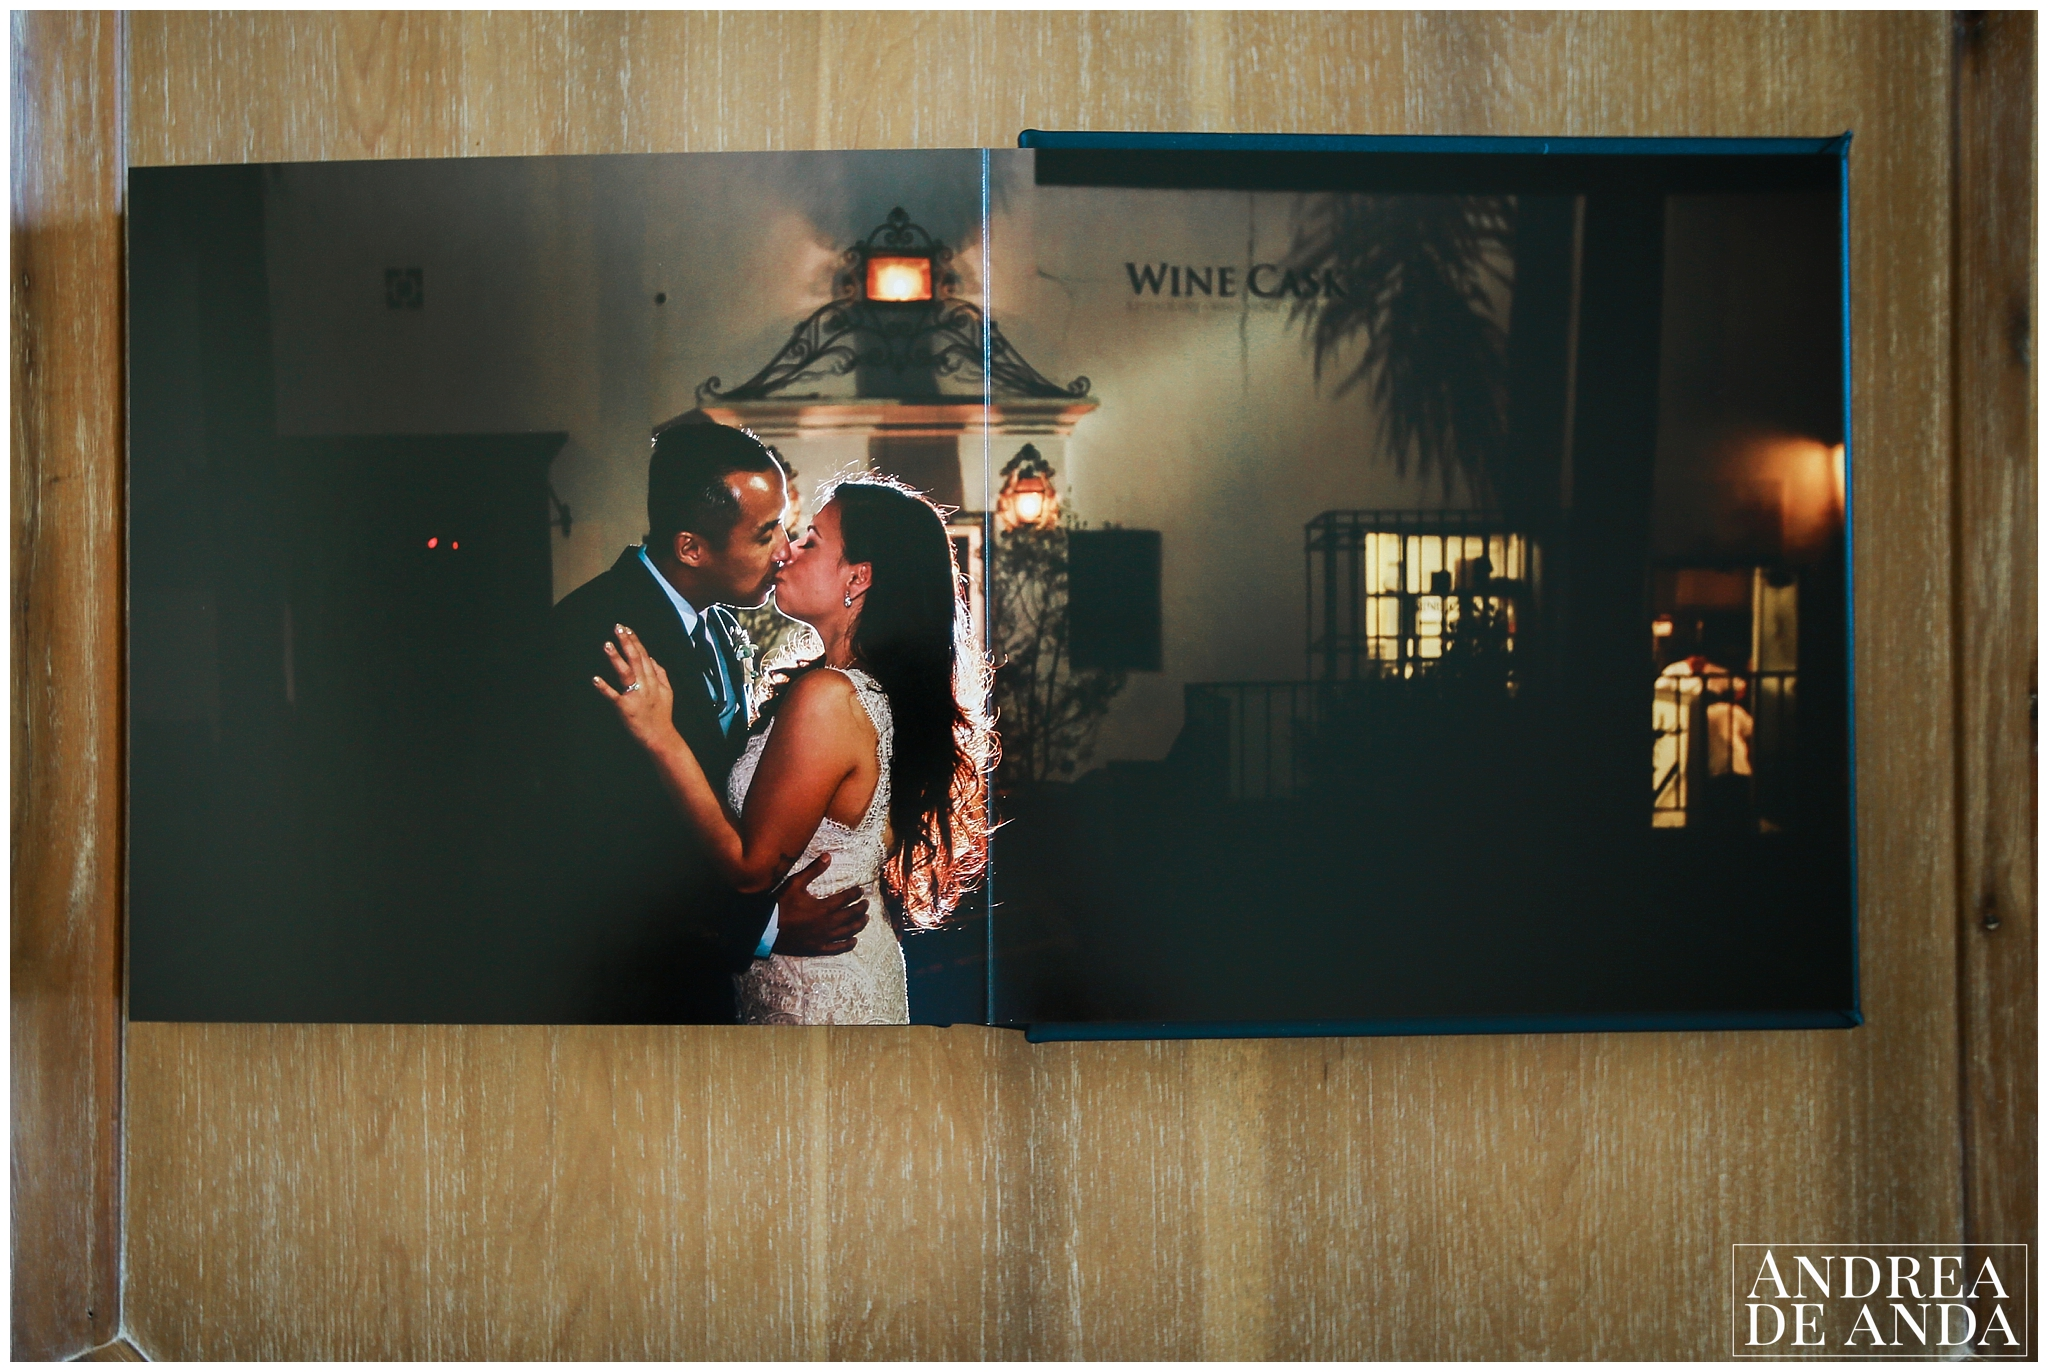 Andrea de Anda Photography_Wedding Album_0011.jpg